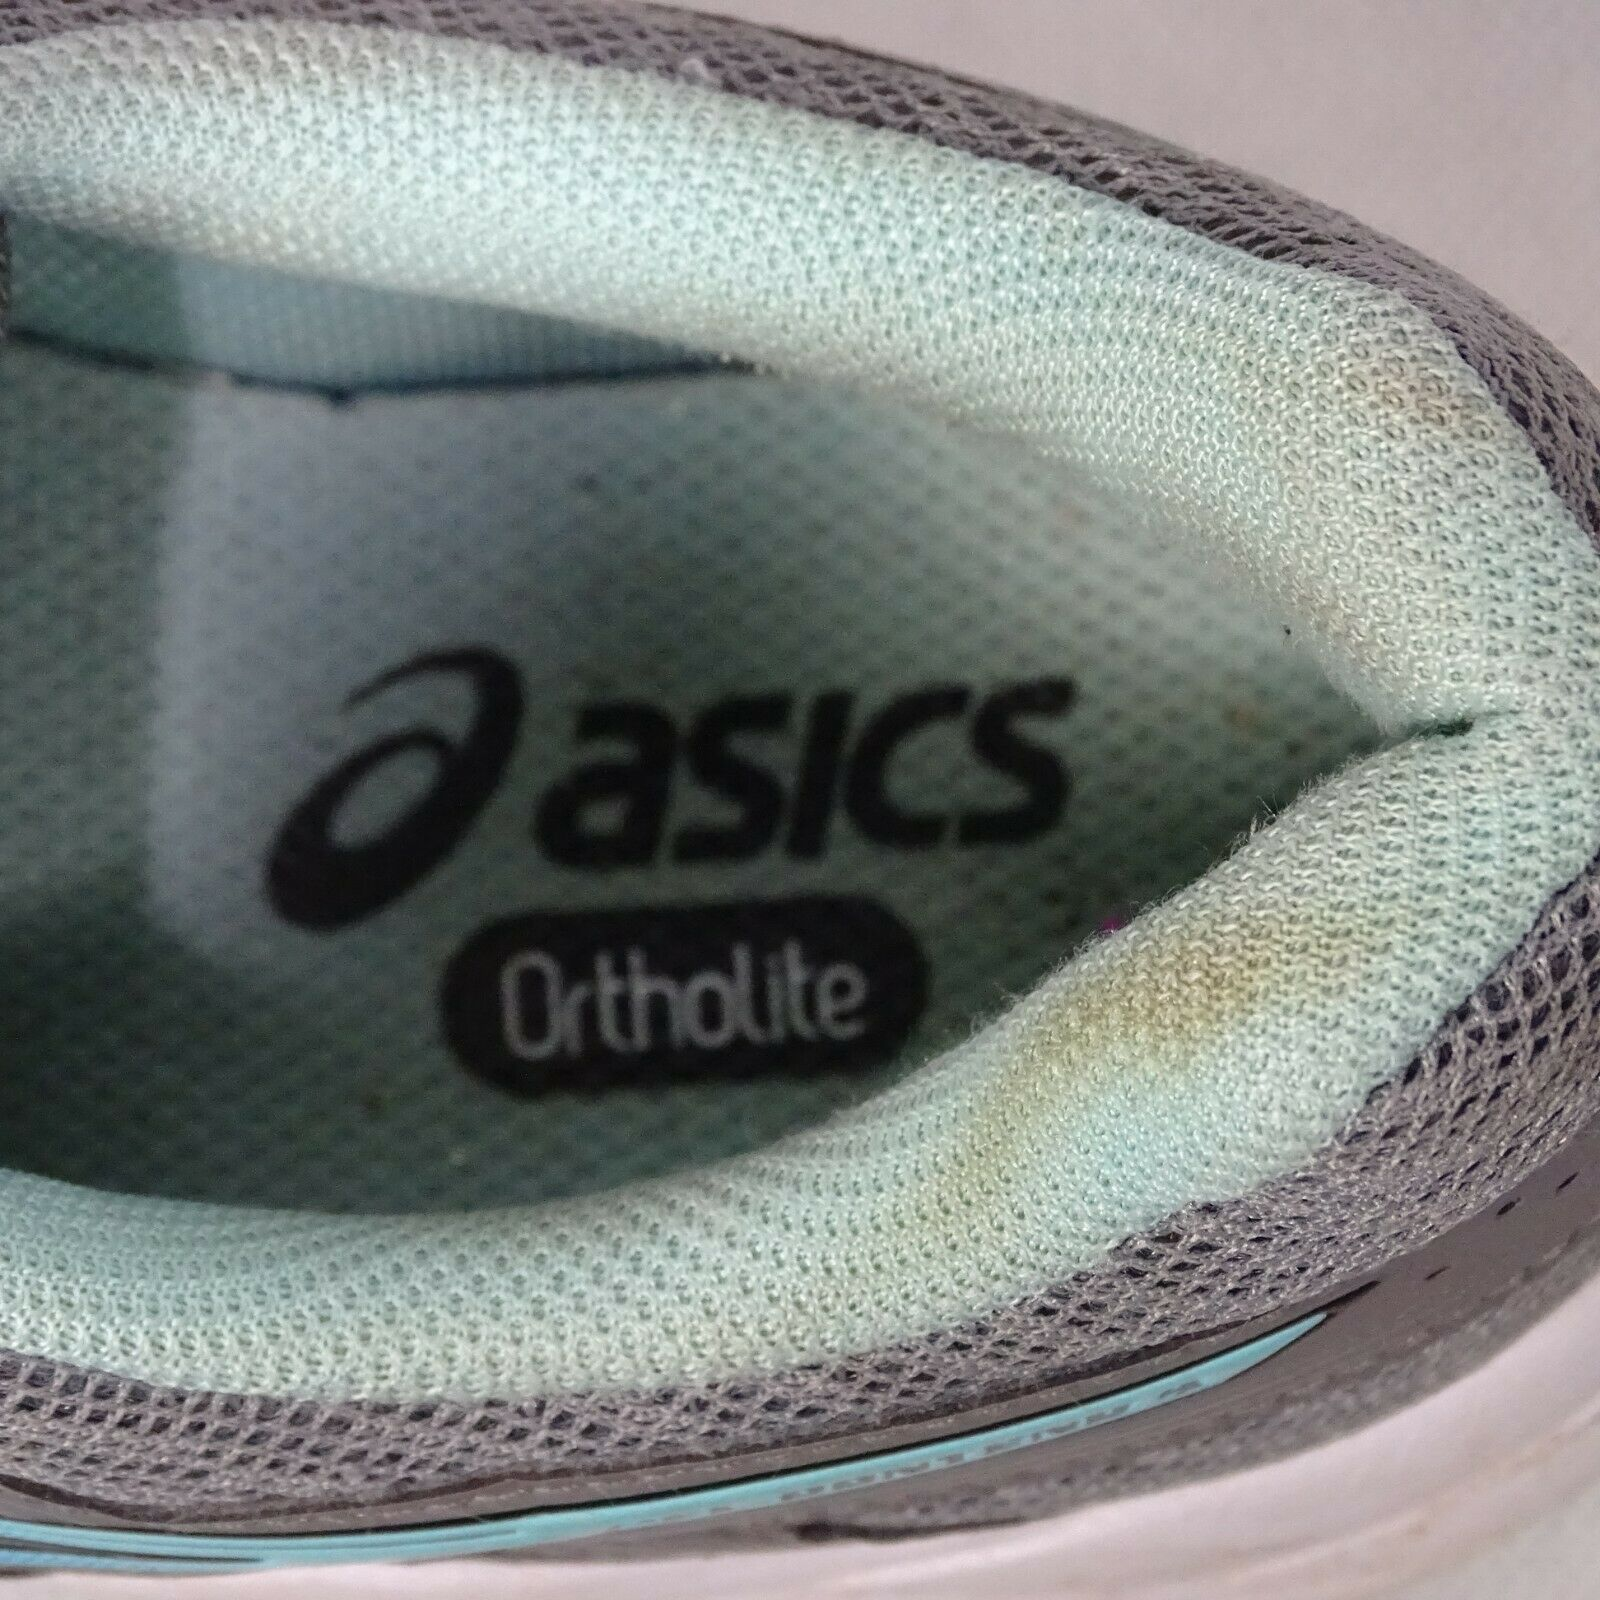 Asics Gel-Contend 4 Ortholite Sneakers Shoes Mesh Women Size 7 Gray Blue T767Q image 4